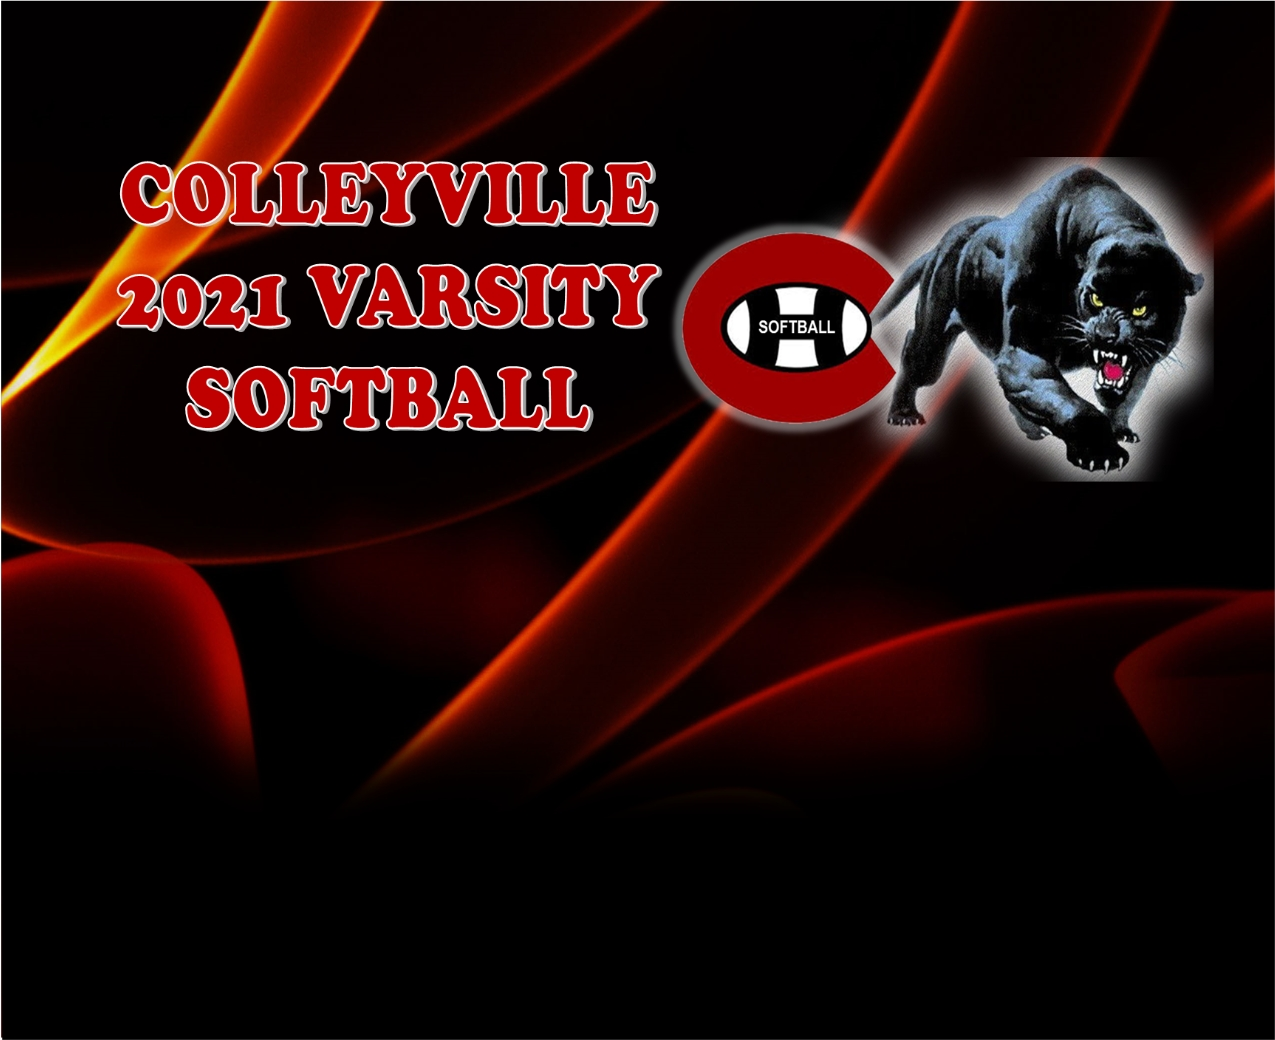 GCISD Softball: Colleyville Panthers Crush Richland Royals To Win District First Seed 17-9